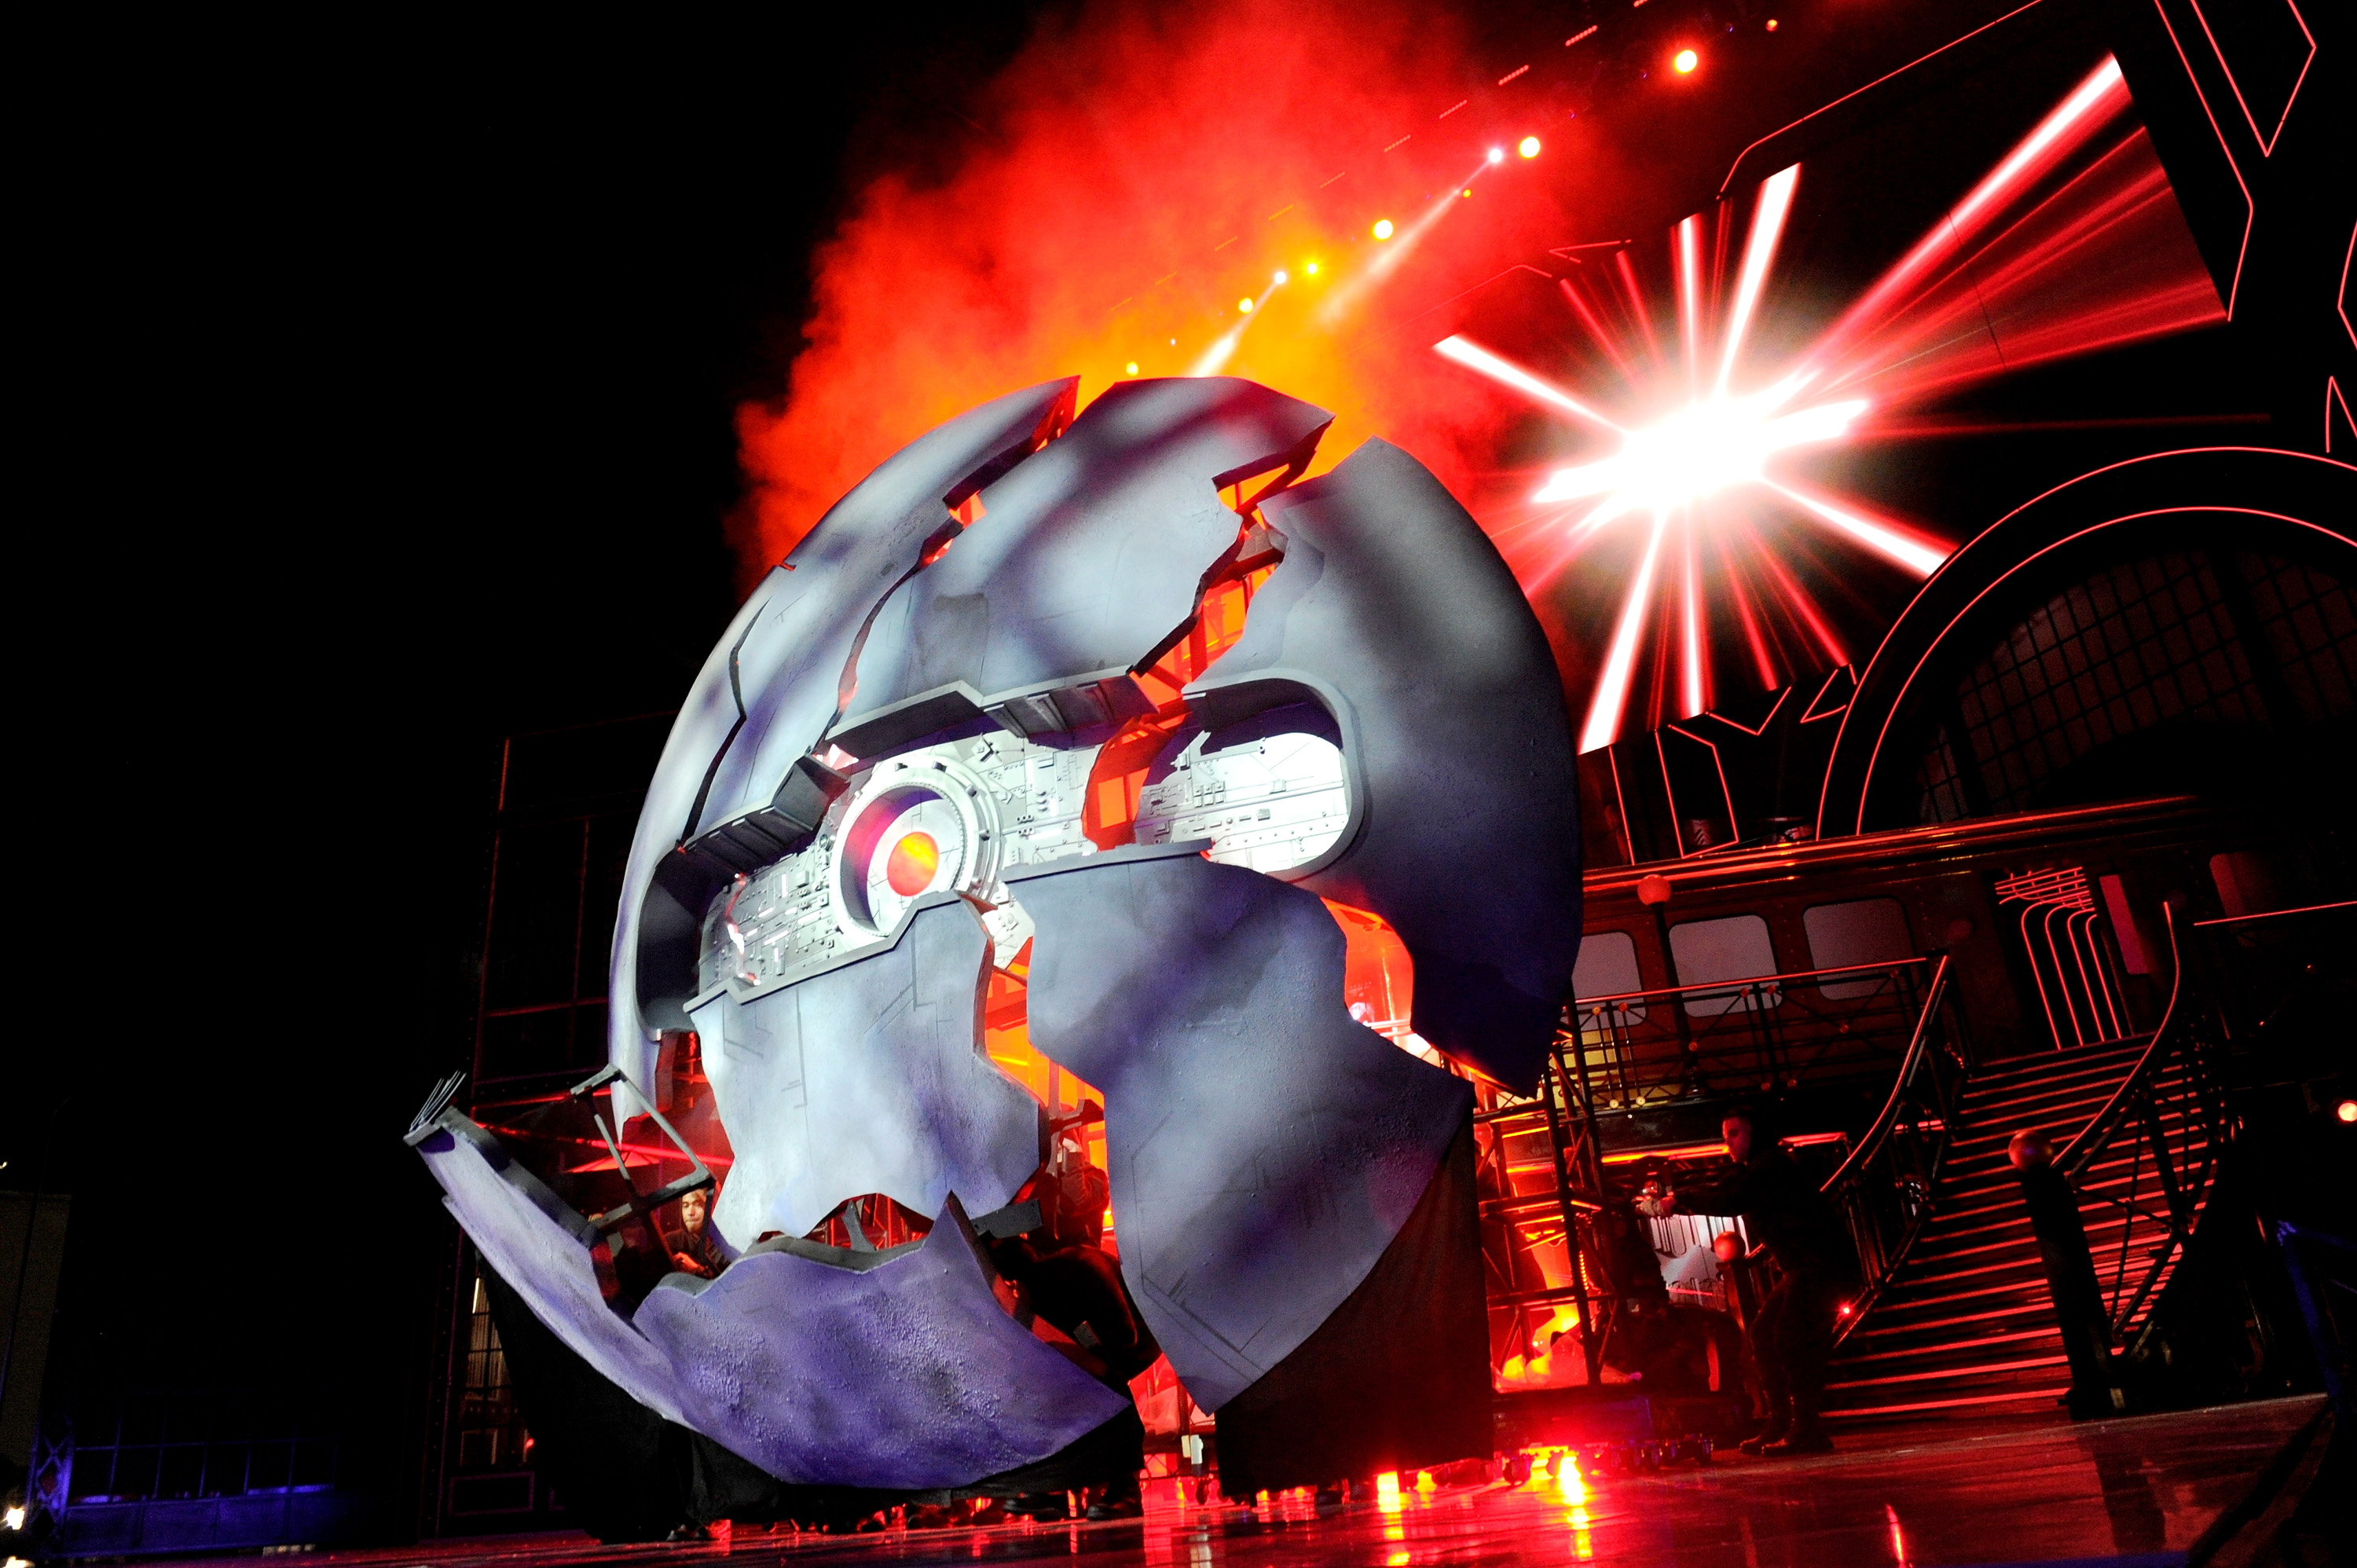 BURBANK, CALIFORNIA - APRIL 09: A simulation of Starkiller Base from 'Star Wars: The Force Awakens' is displayed onstage during the 2016 MTV Movie Awards at Warner Bros. Studios on April 9, 2016 in Burbank, California. MTV Movie Awards airs April 10, 2016 at 8pm ET/PT.   Emma McIntyre/Getty Images for MTV/AFP